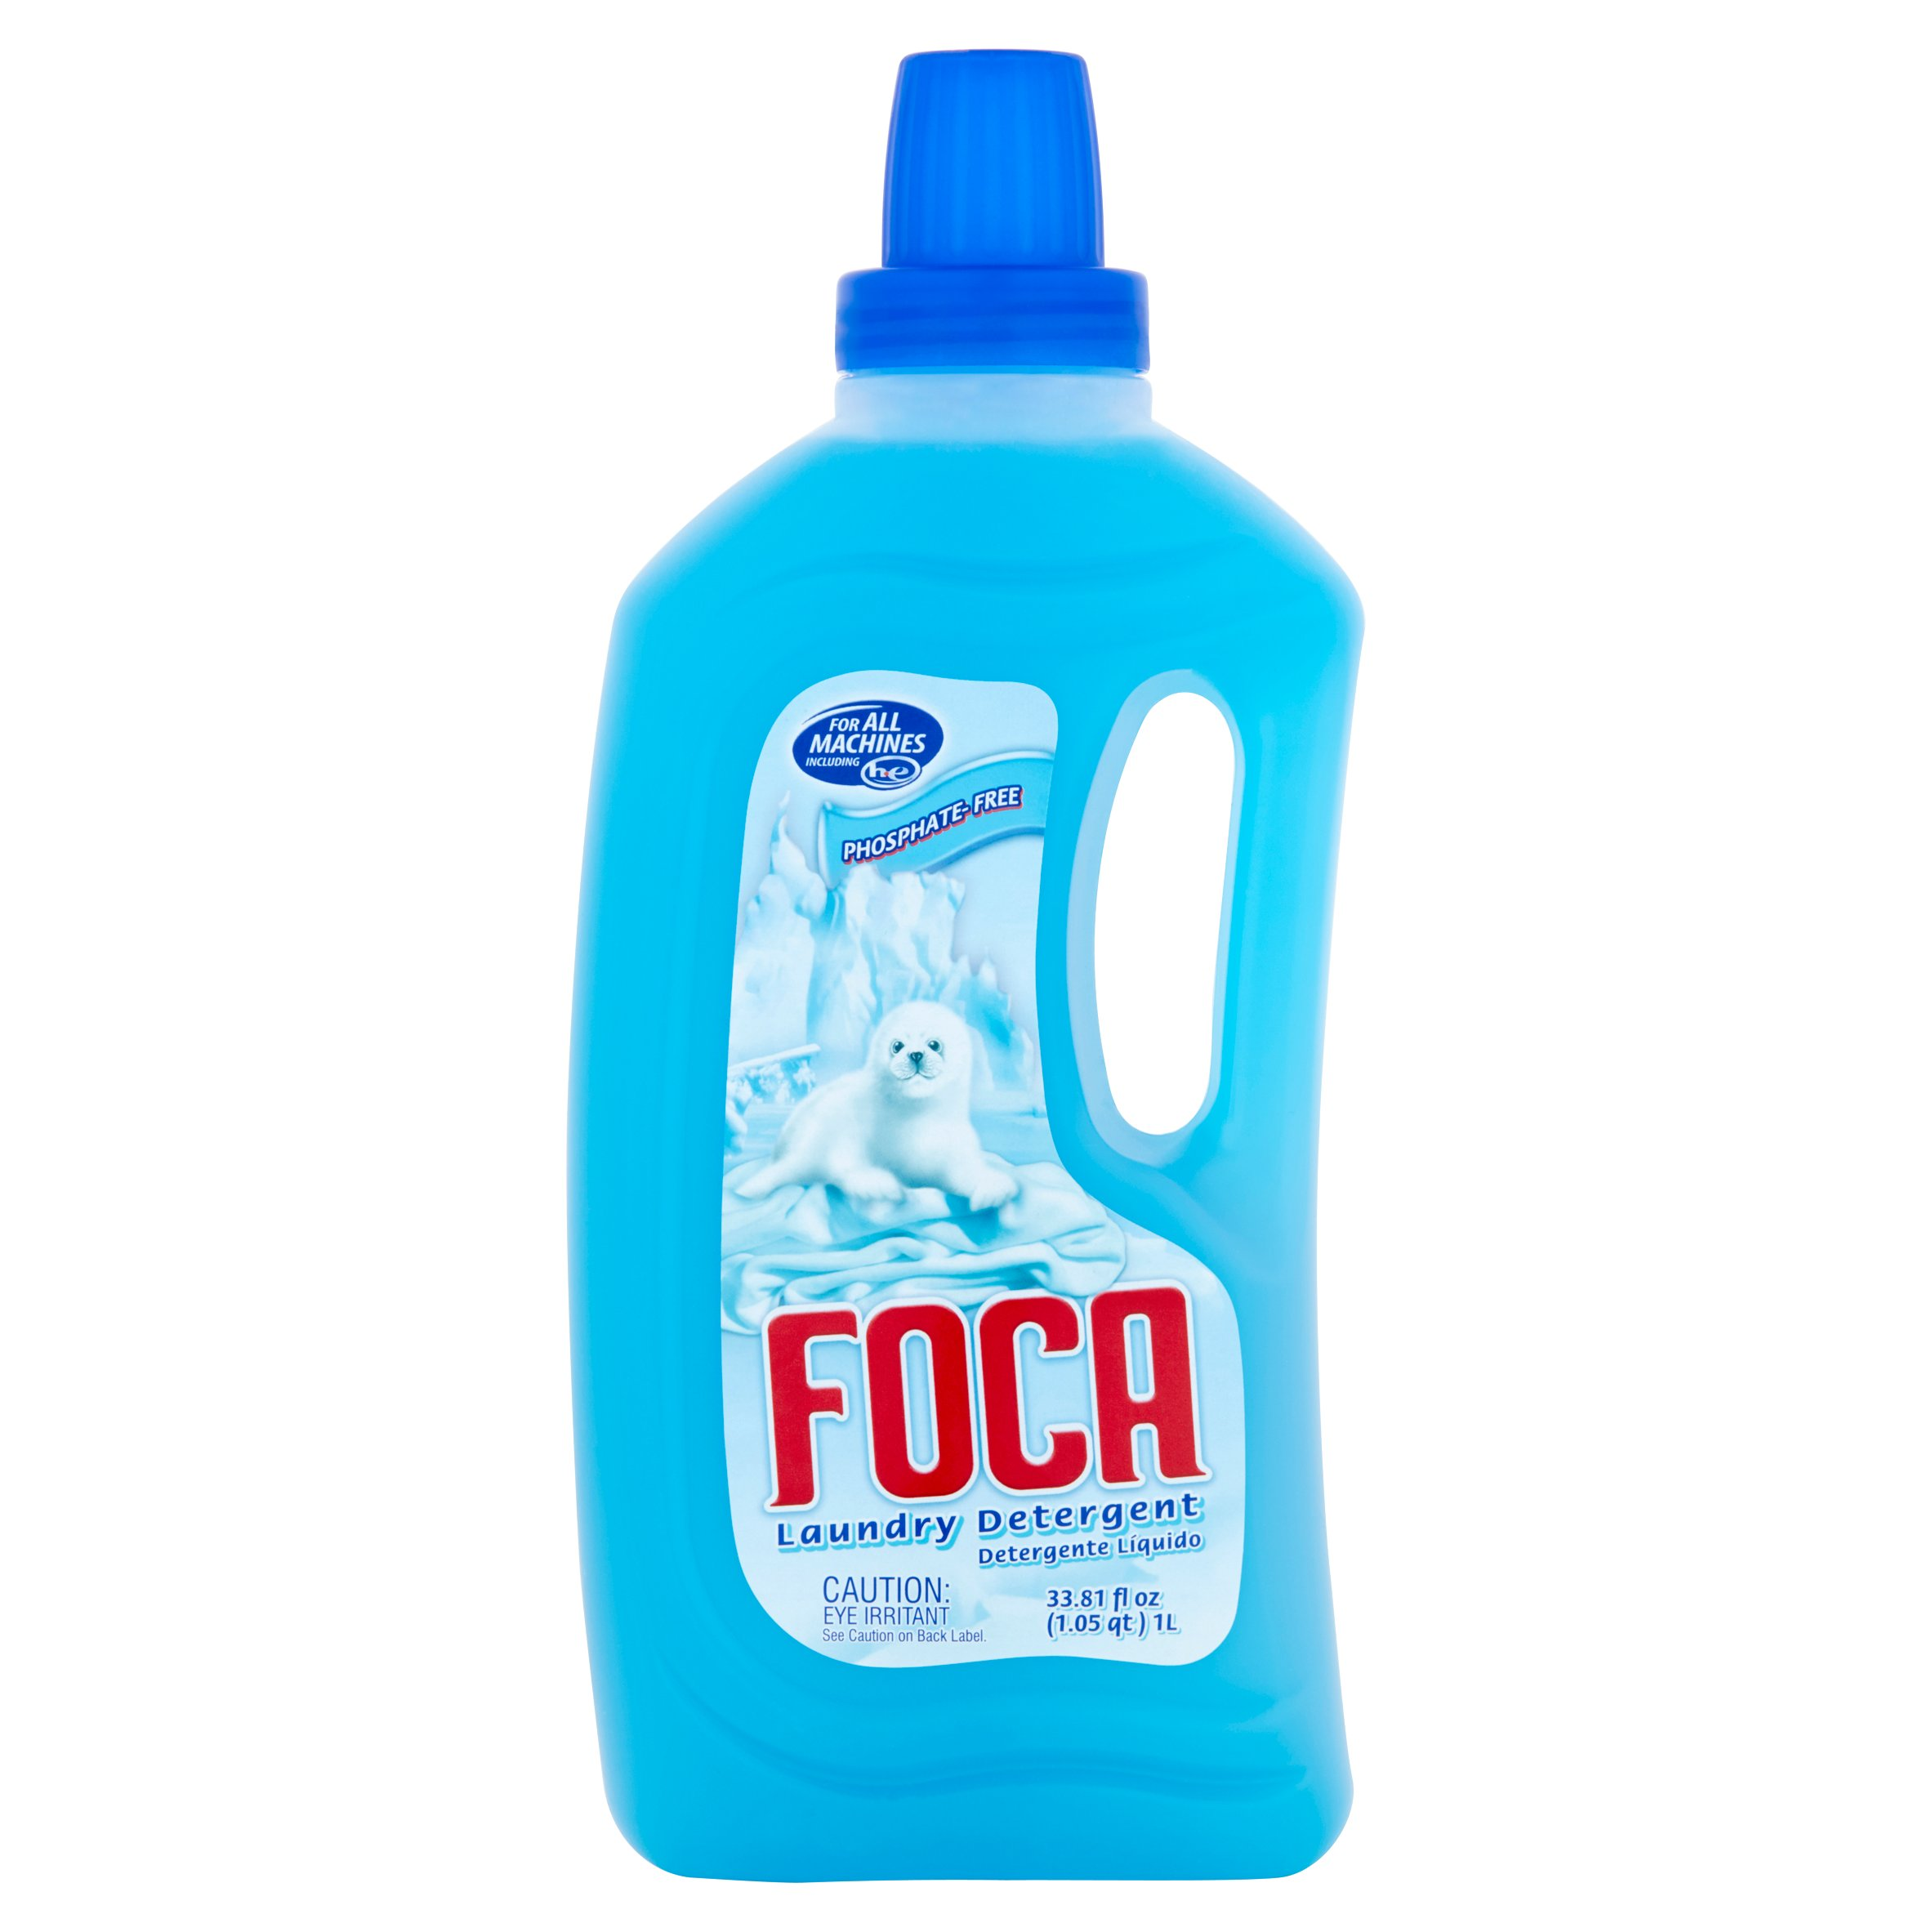 Foca Liquid Laundry Detergent, 33.81 oz